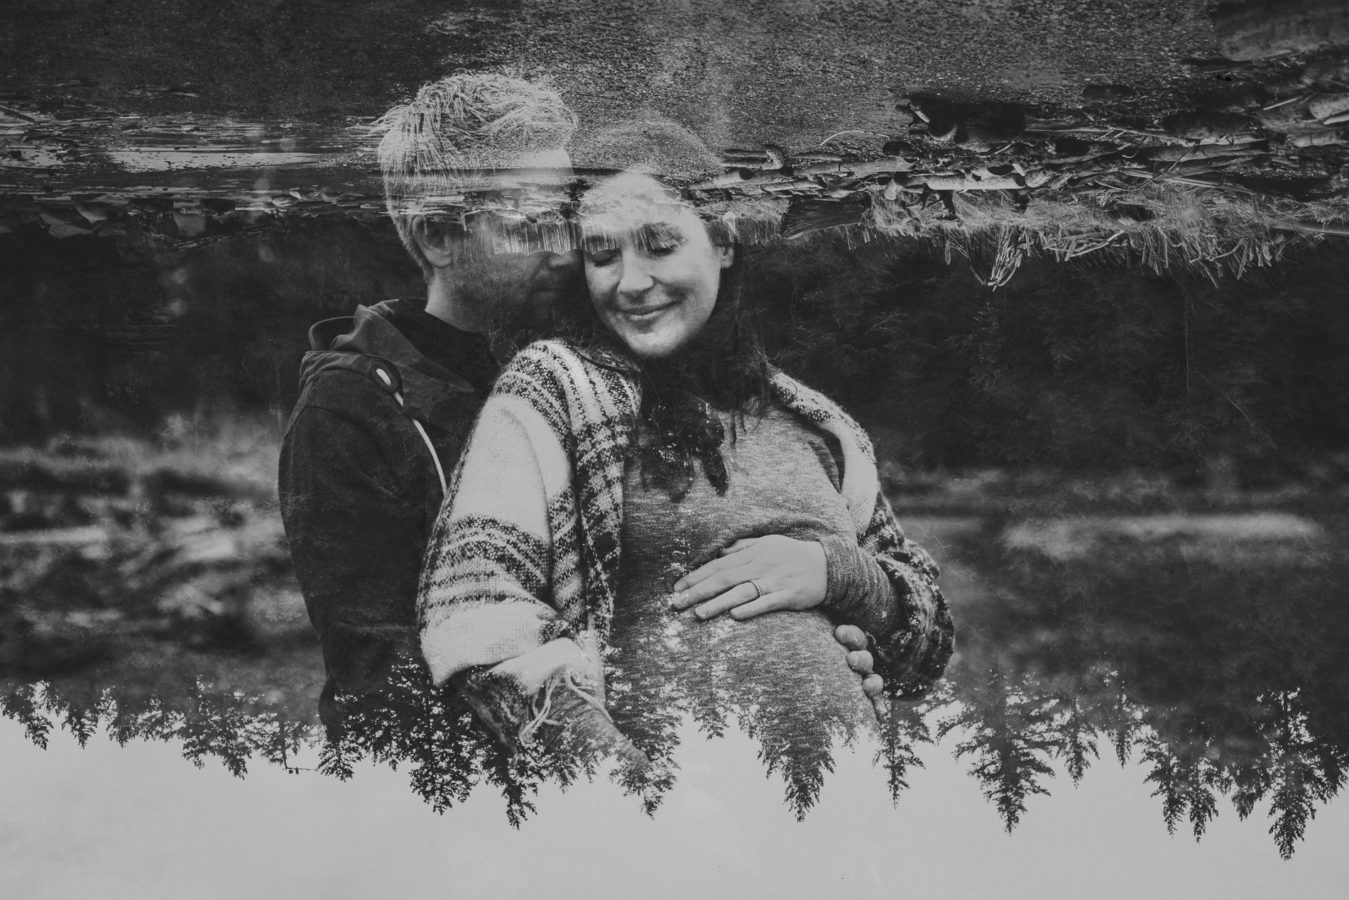 double exposure of a pregnant woman and her man embracing with trees and beach exposed over them